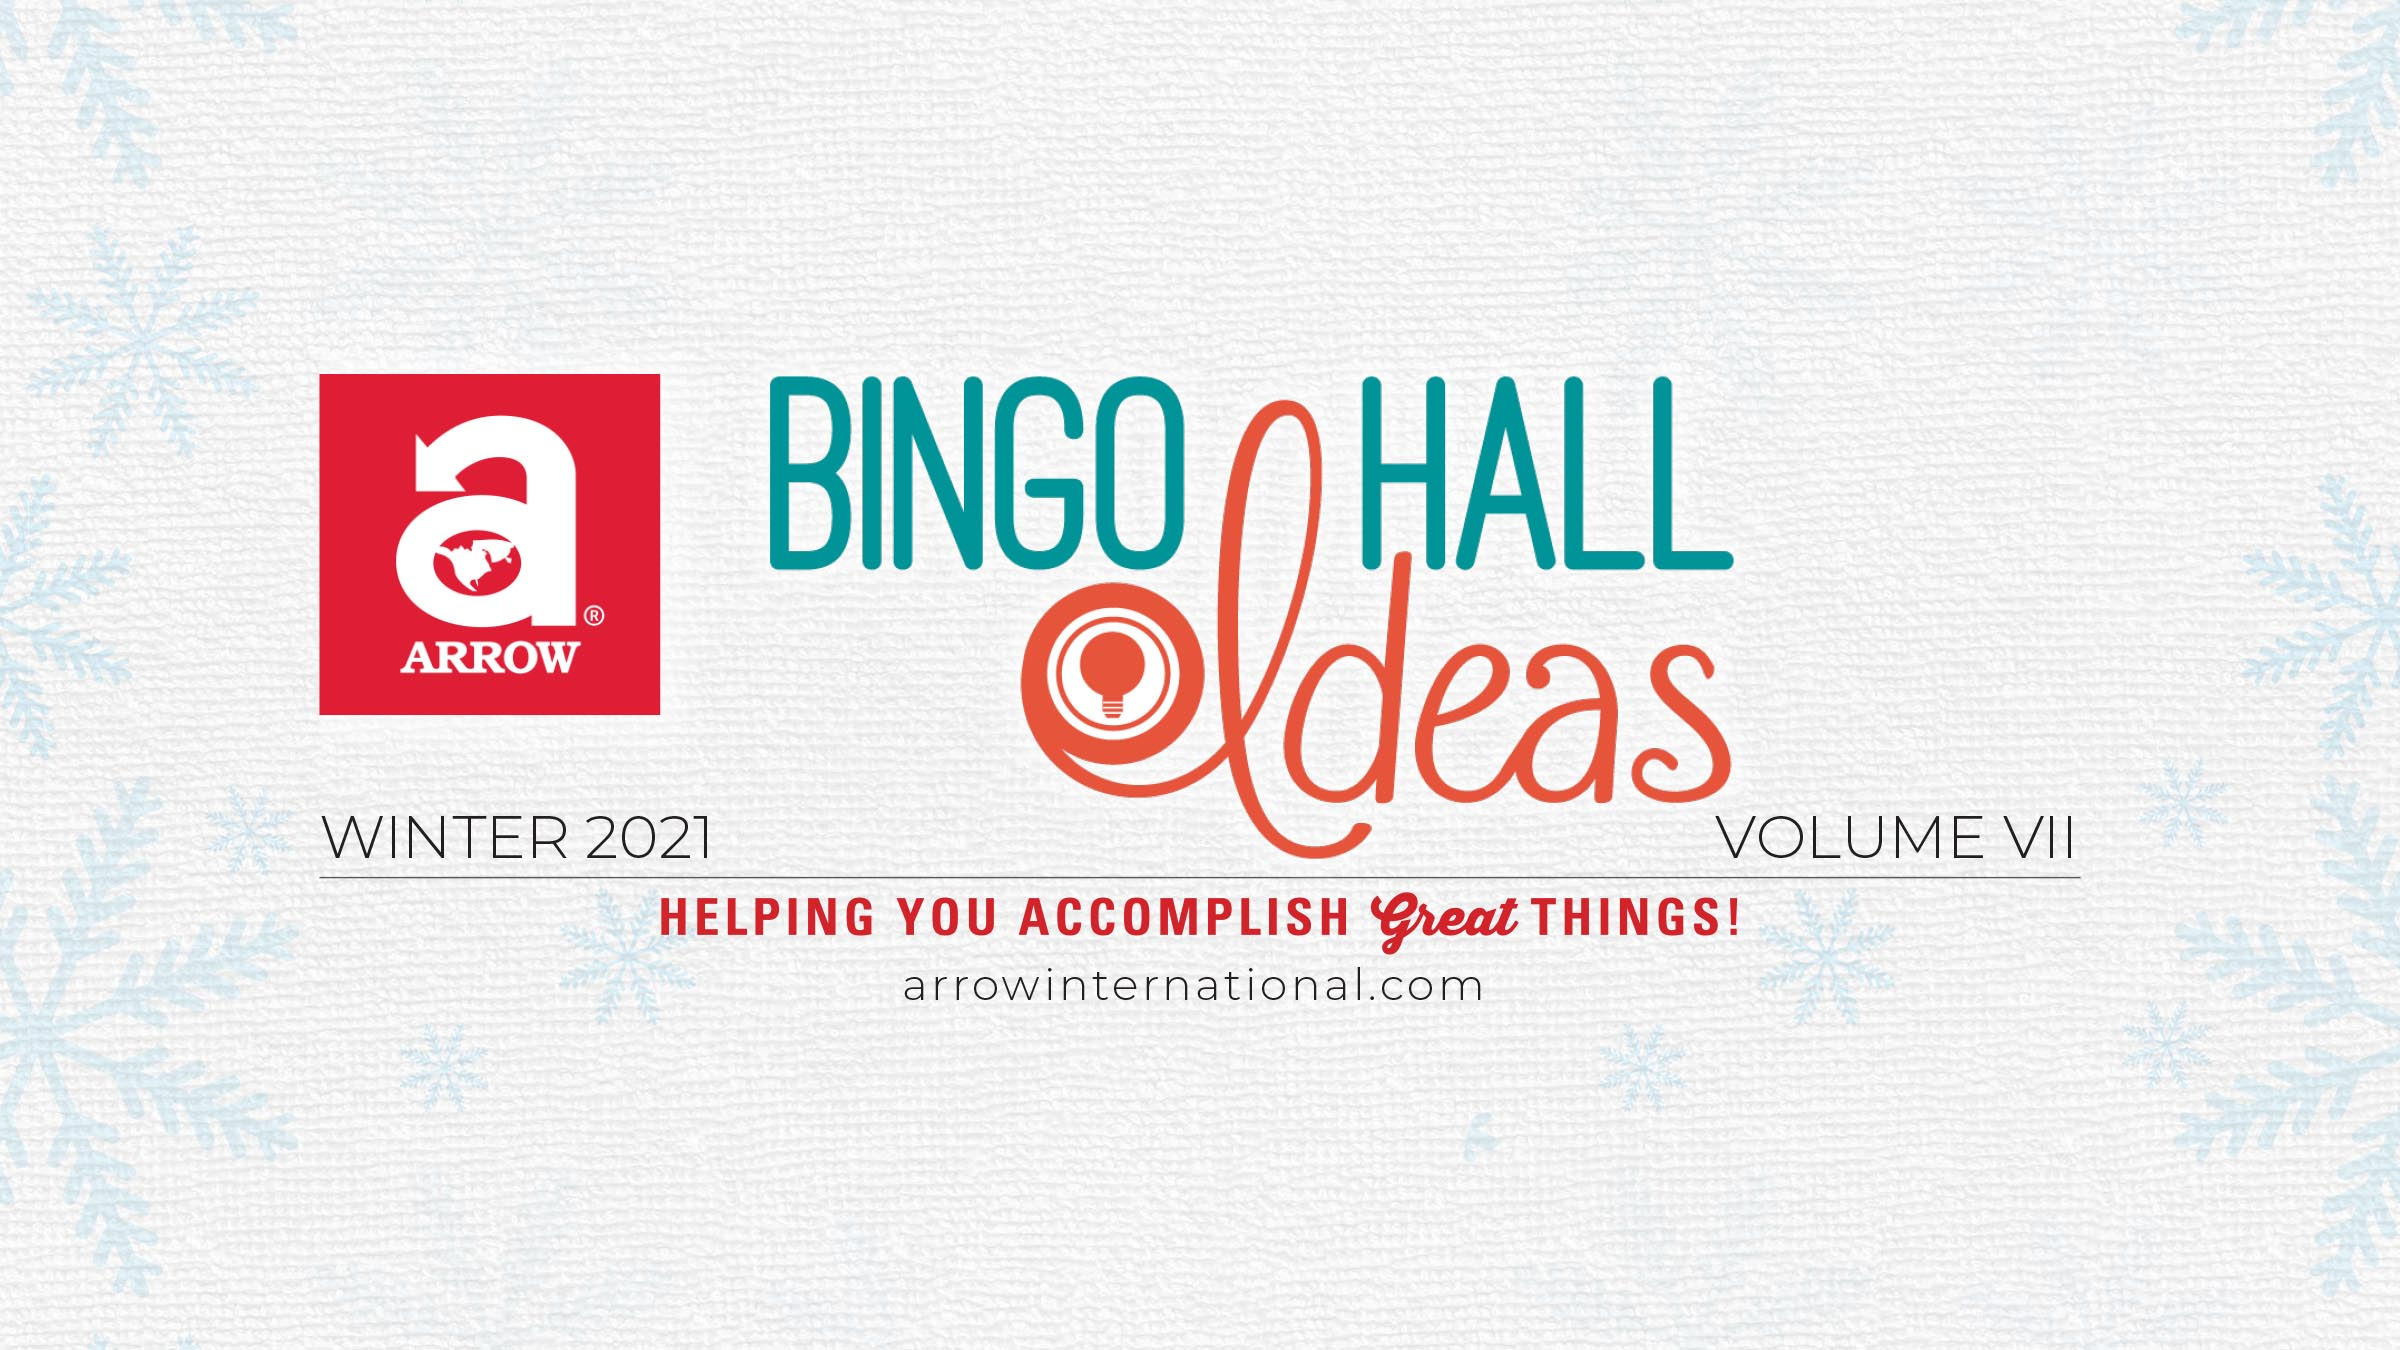 Winter Bingo Hall Ideas